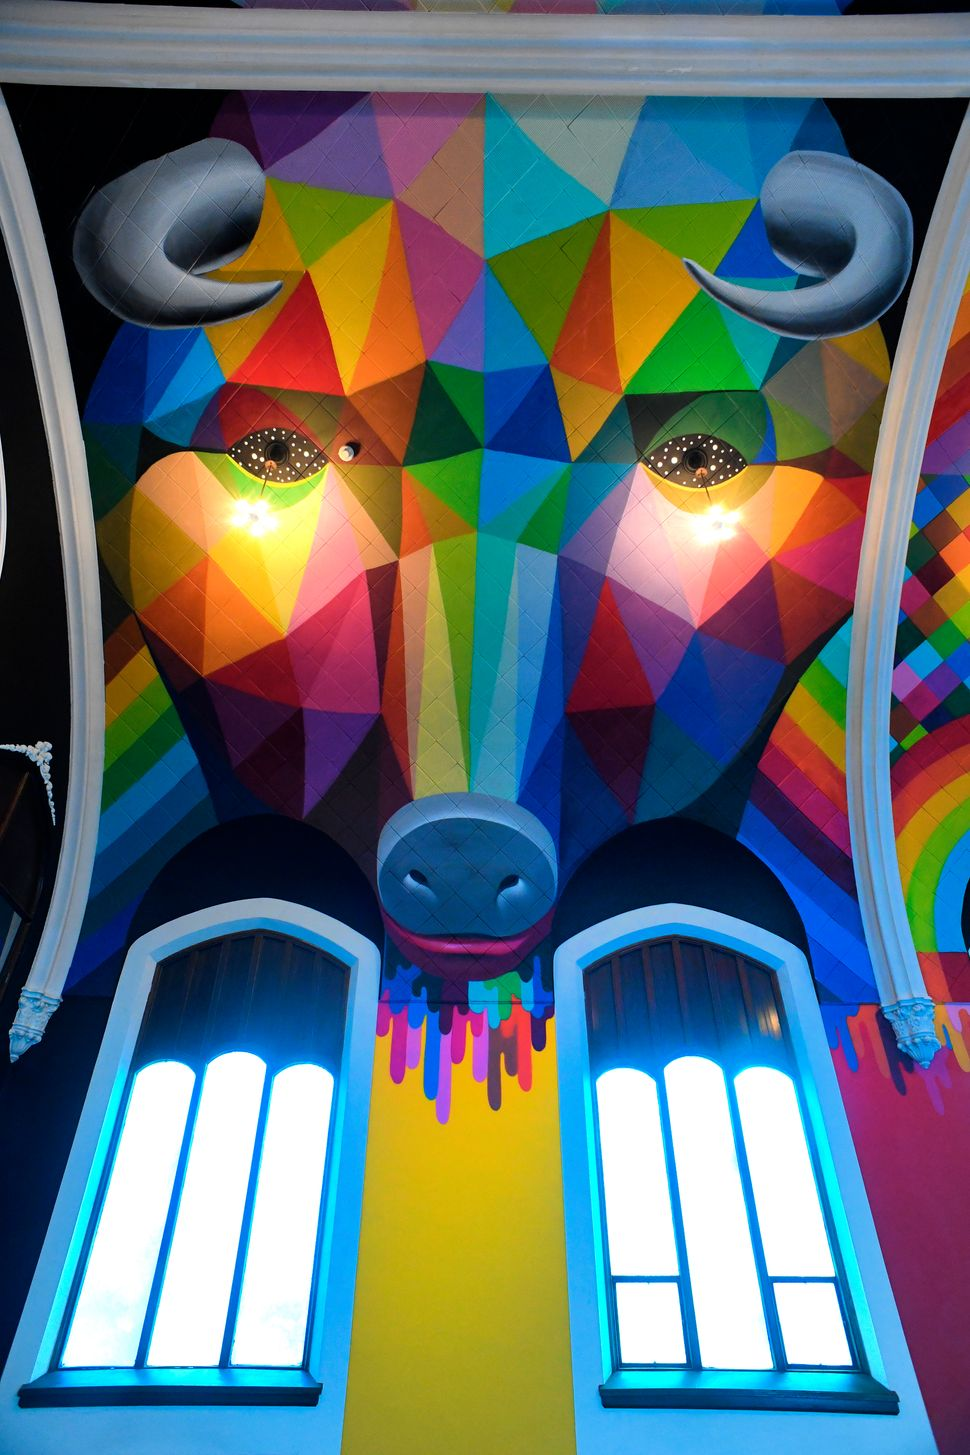 The interior painting was done by Spanish artist Okuda San Miguel. American artist Kenny Scharf painted the church facade.